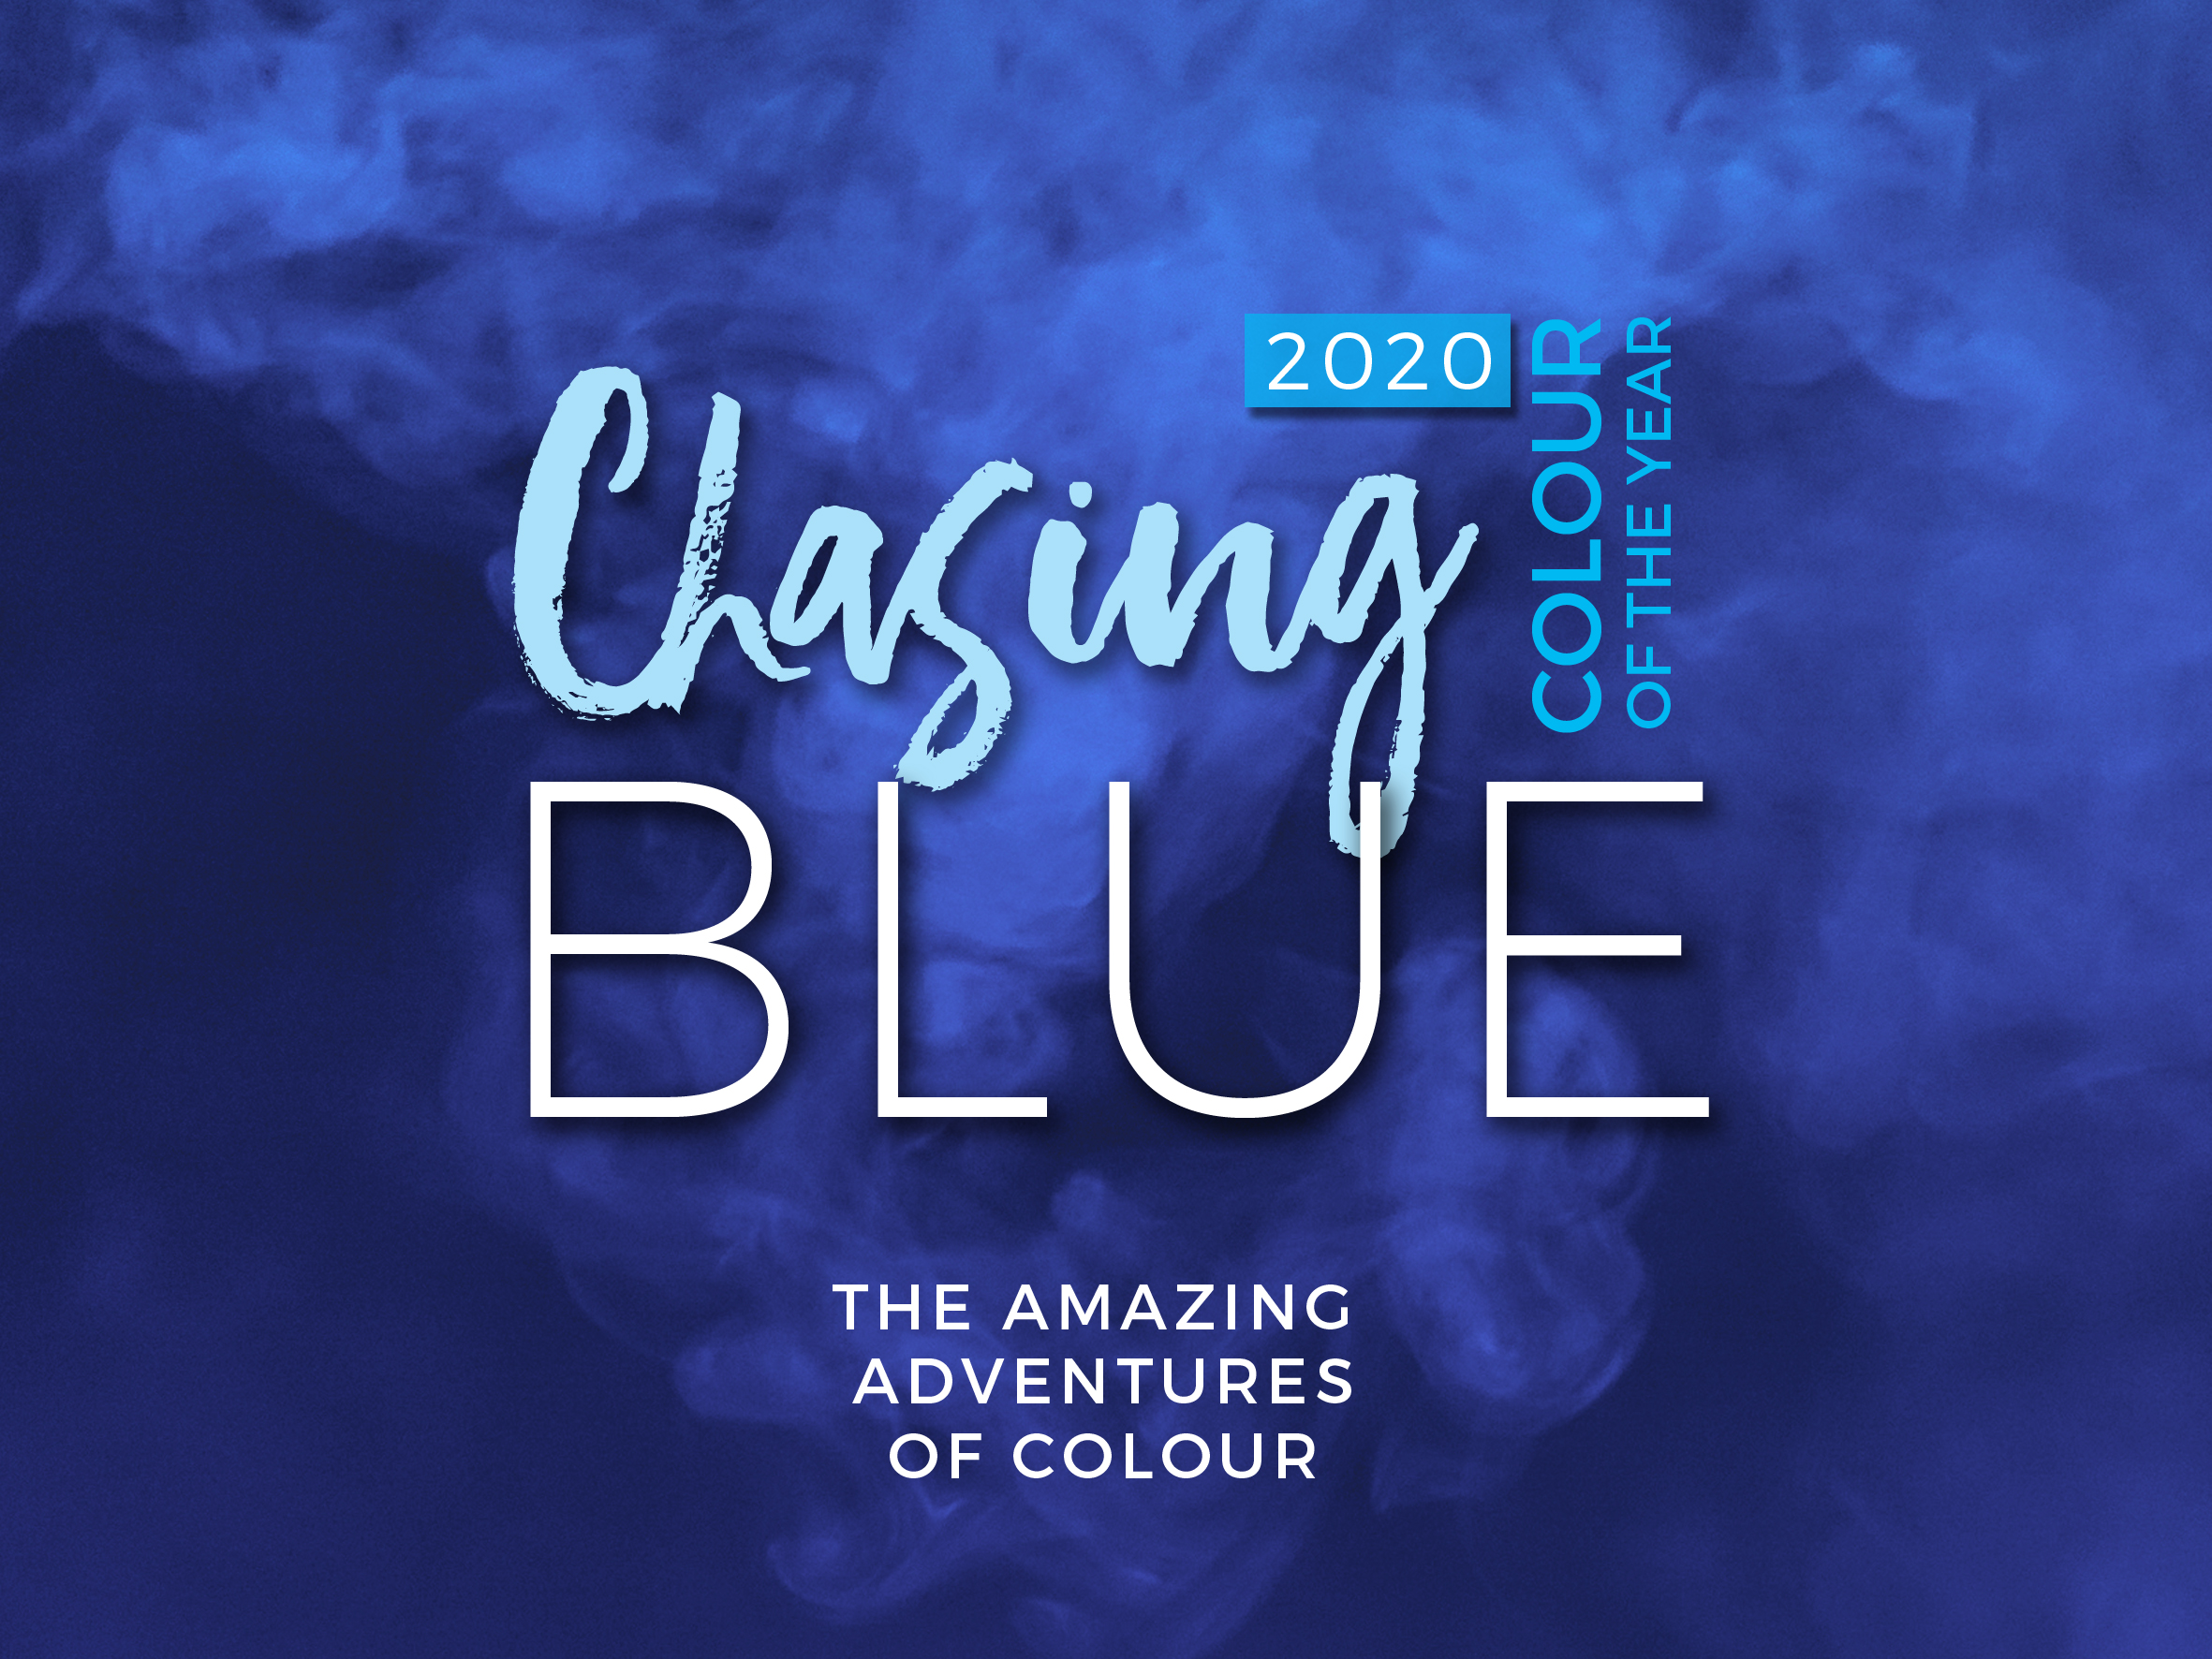 Chasing Blue - 2020 Colour of the Year